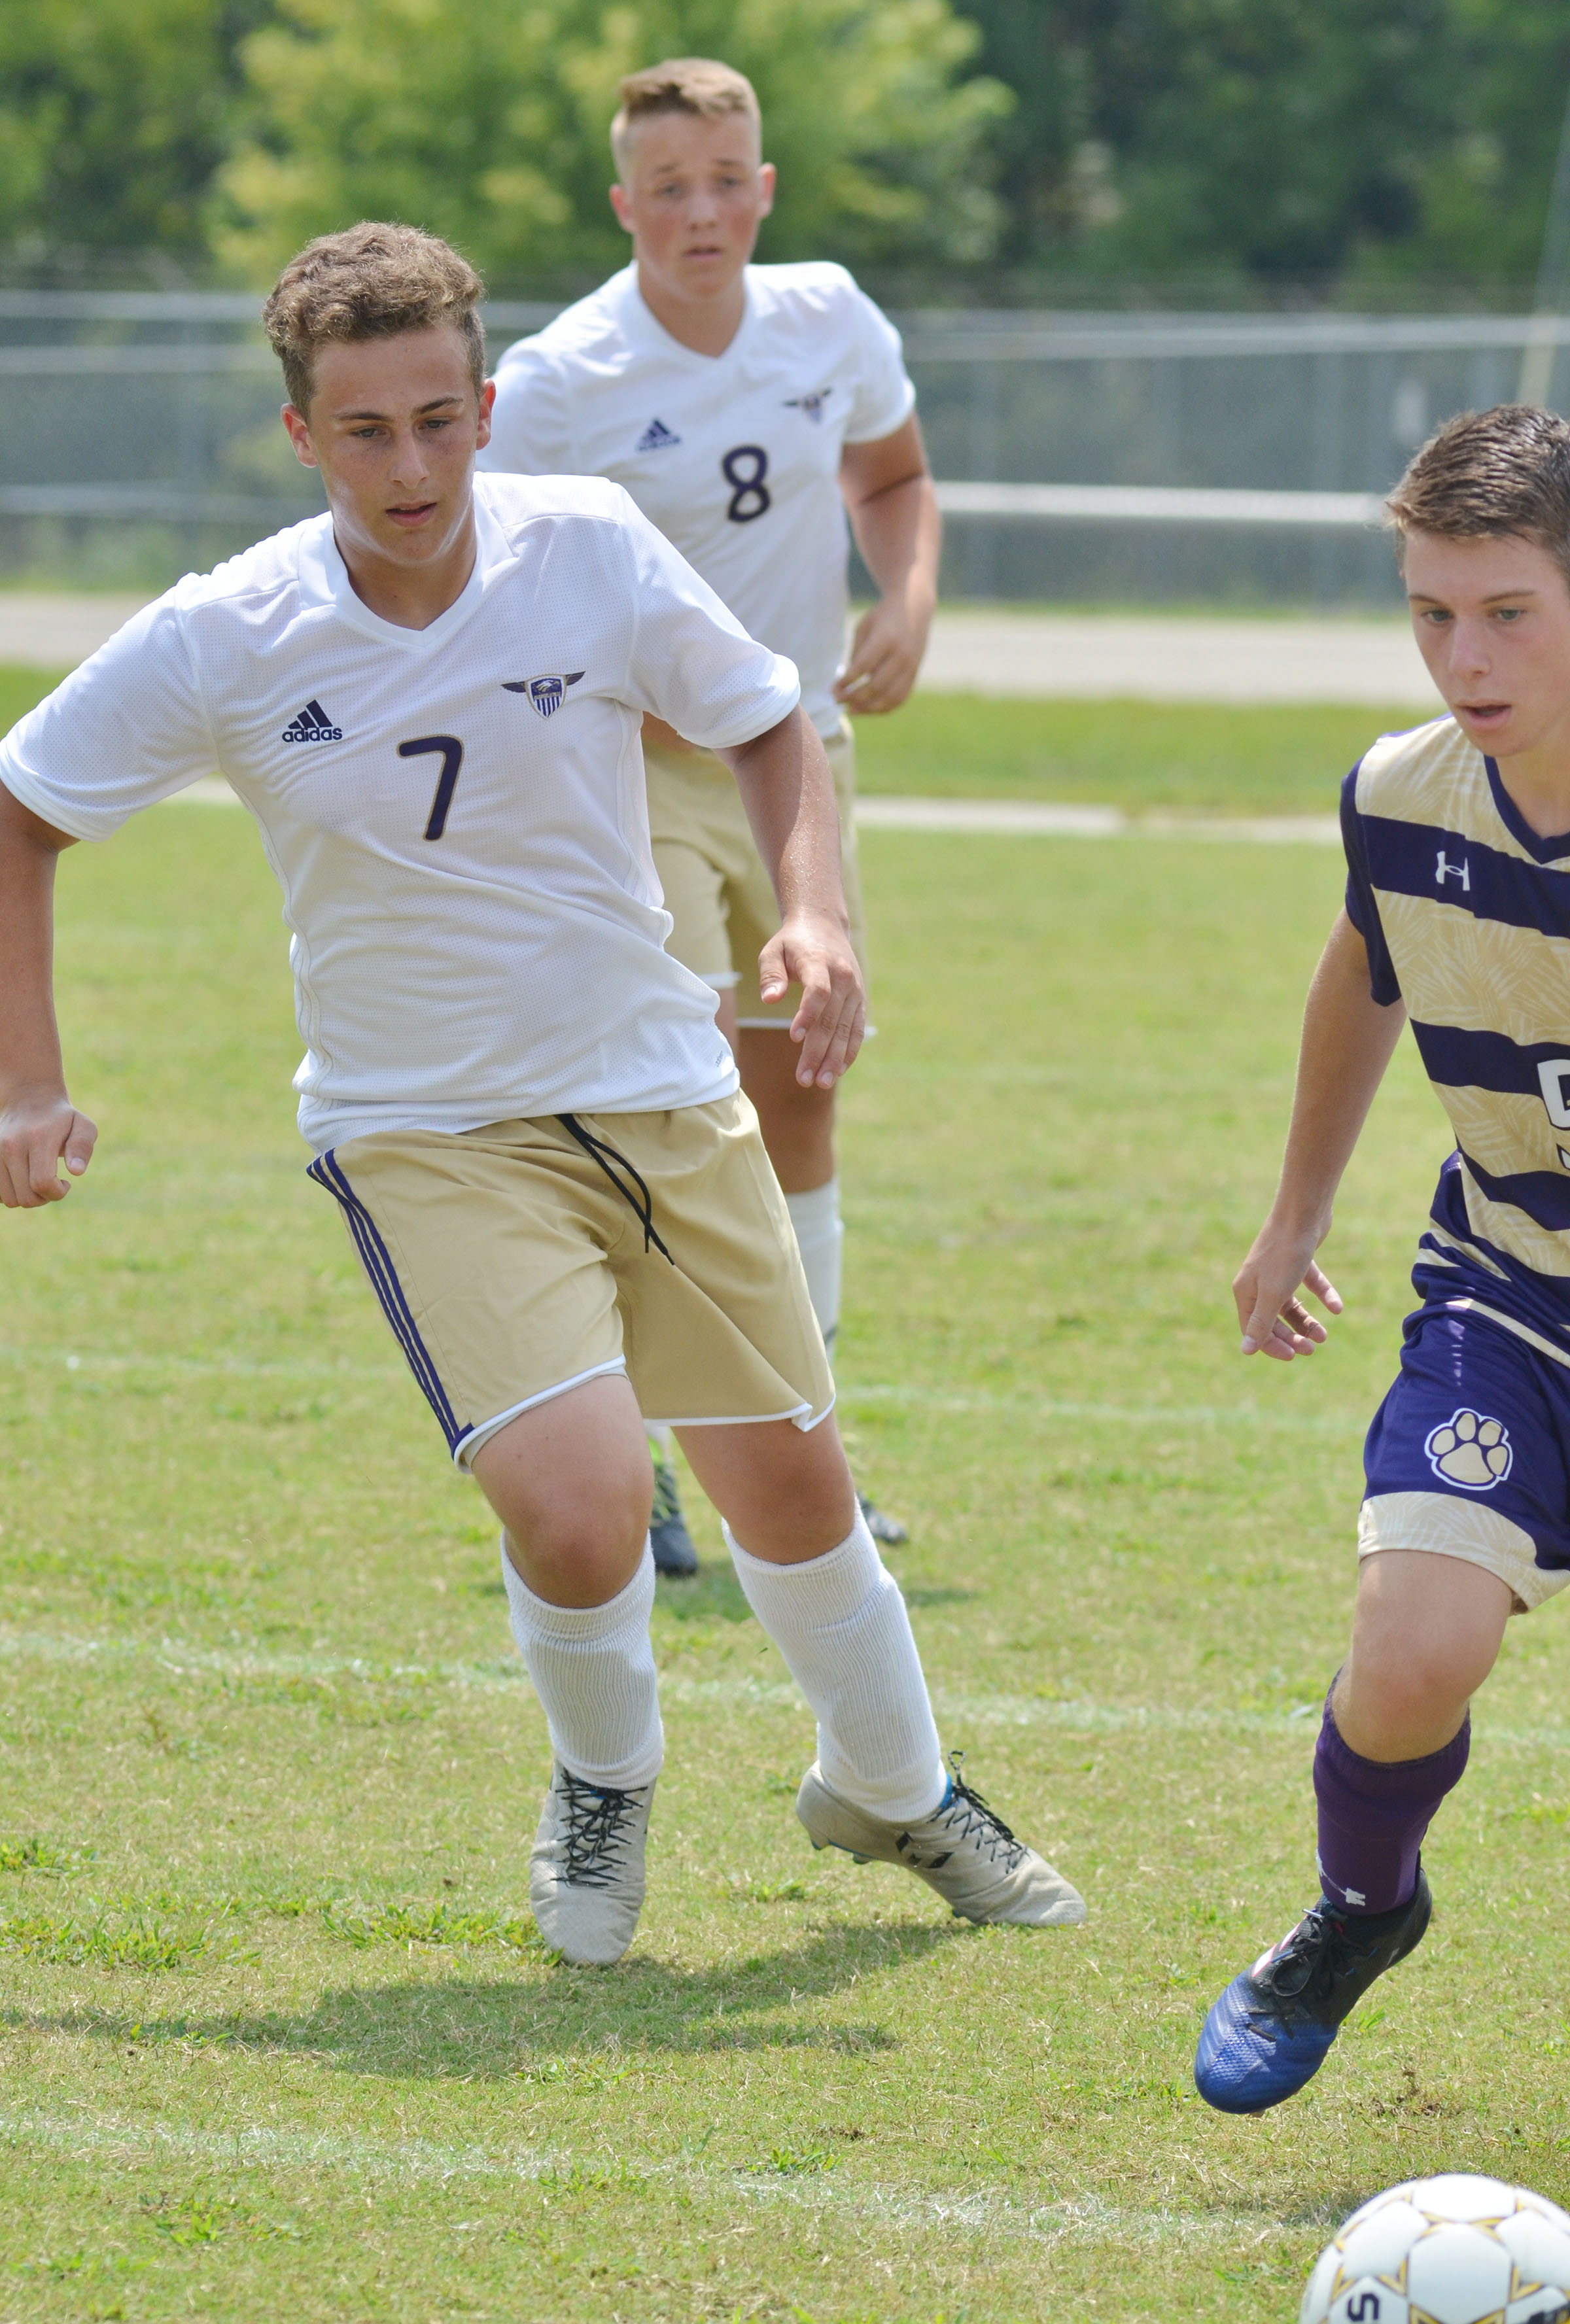 CHS junior Brody Weeks plays defense.